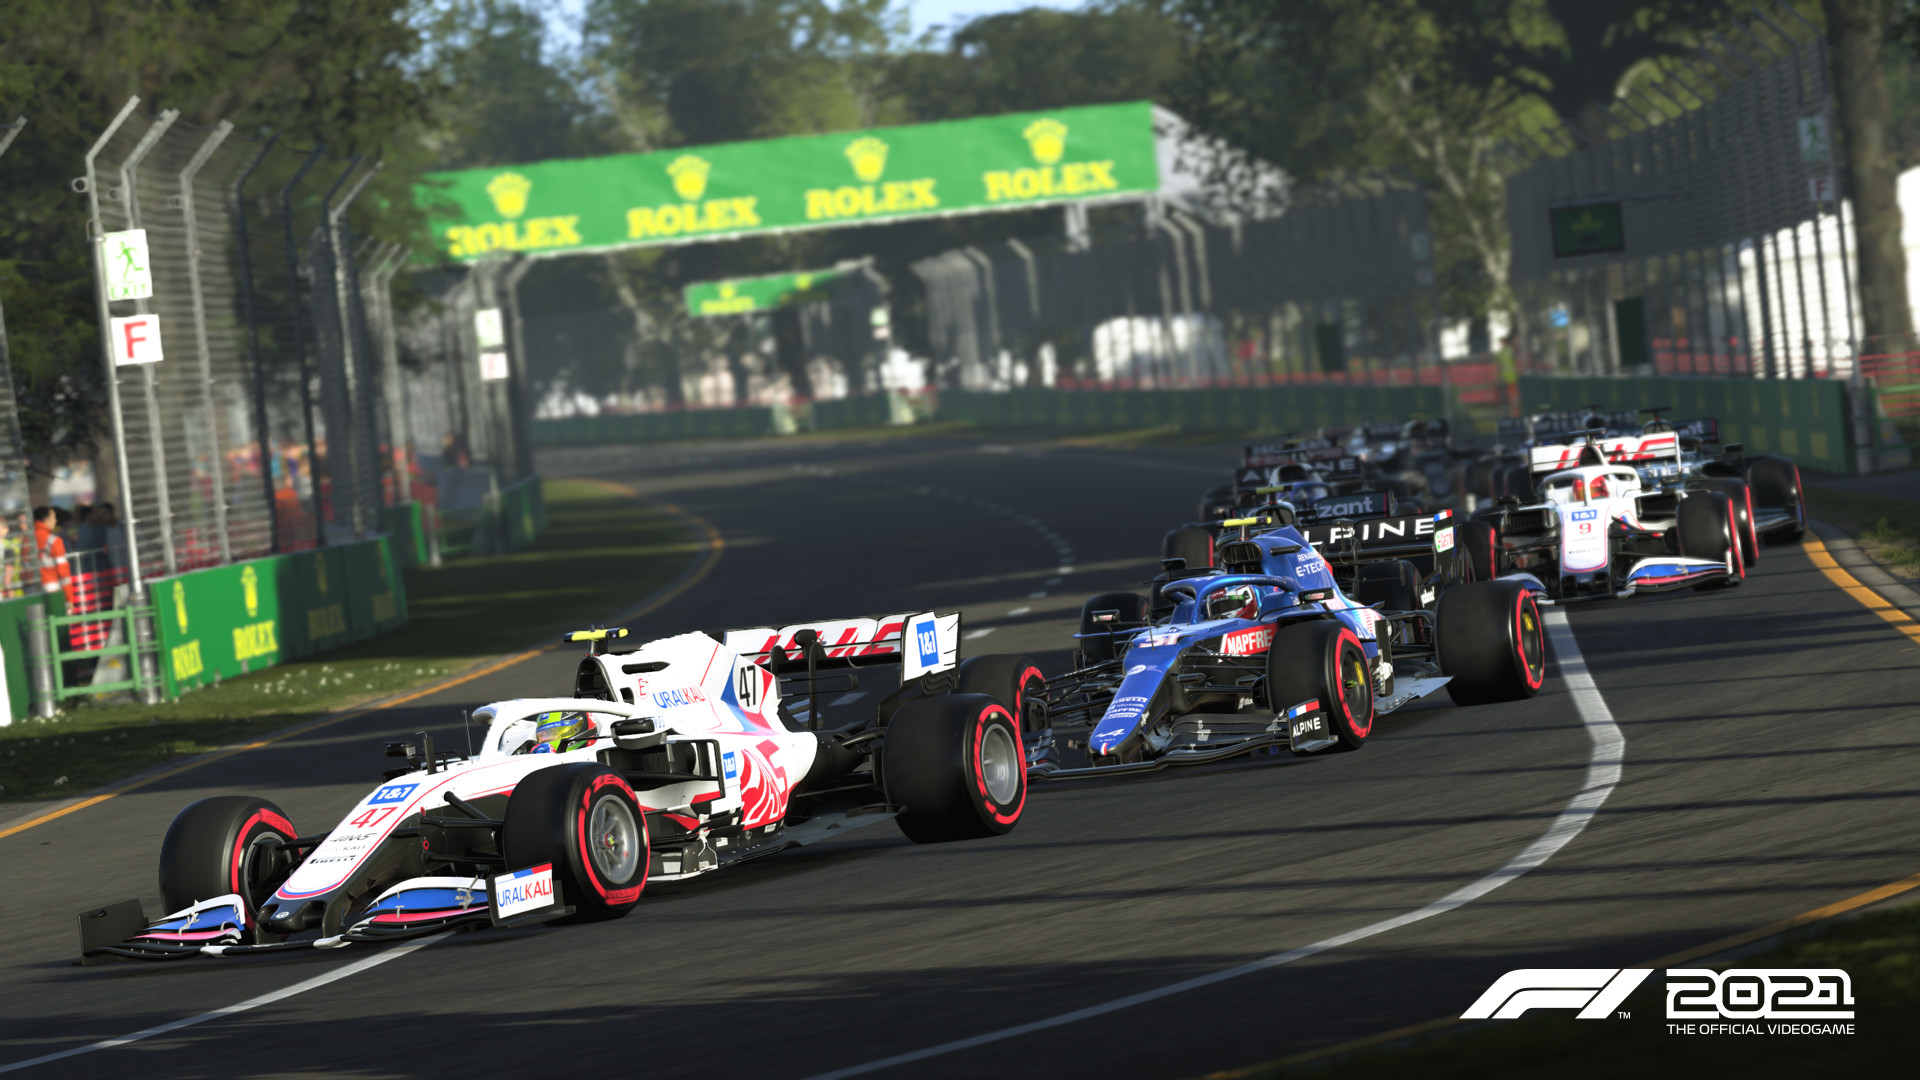 F1 2021 game review - Melbourne